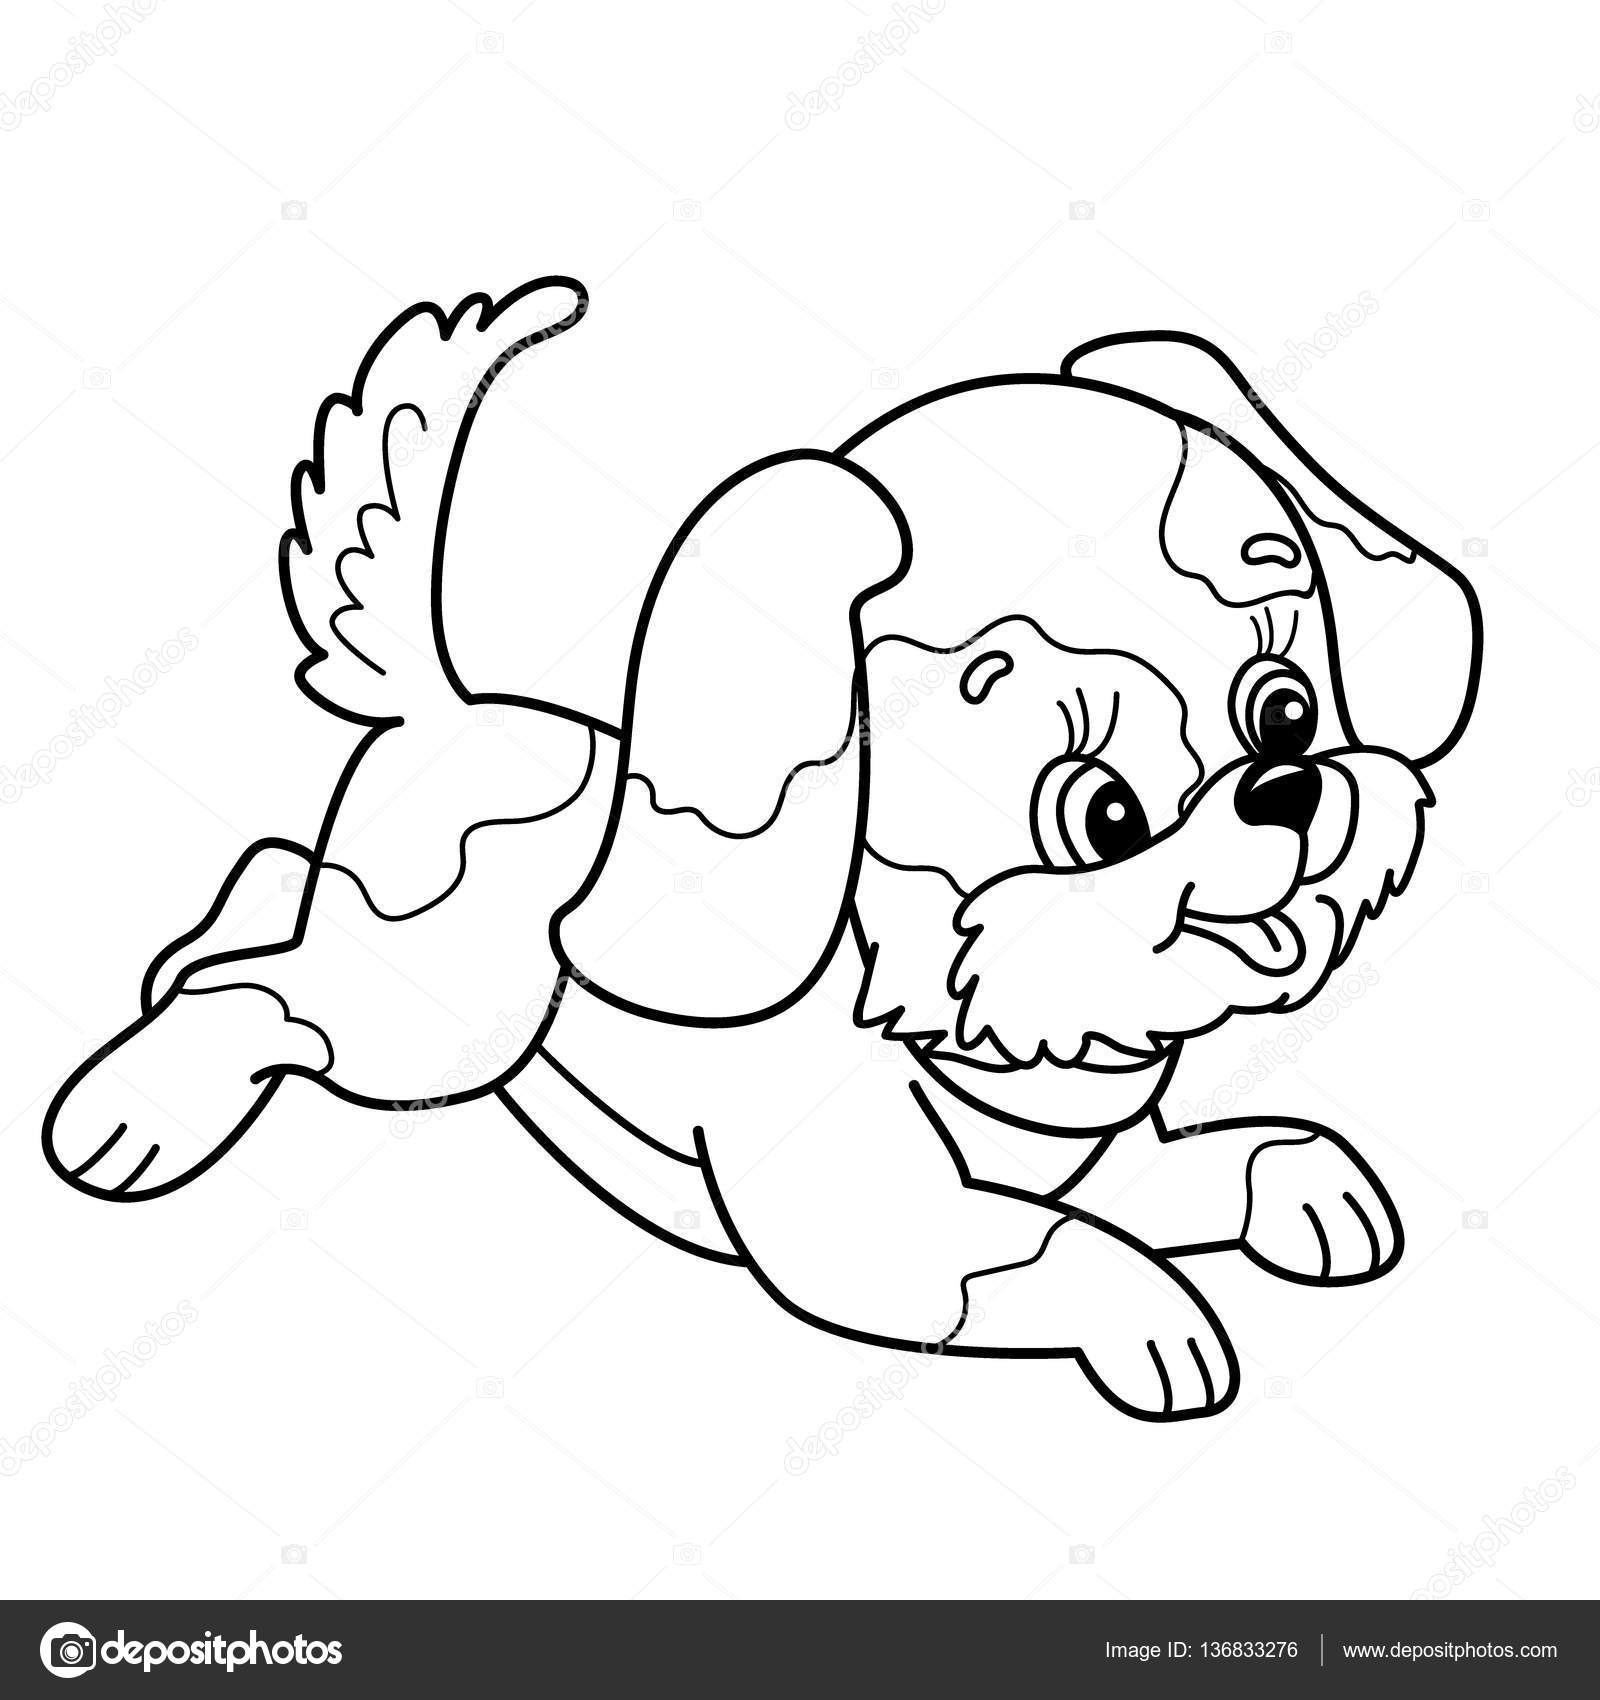 depositphotos stock illustration coloring page outline of cute